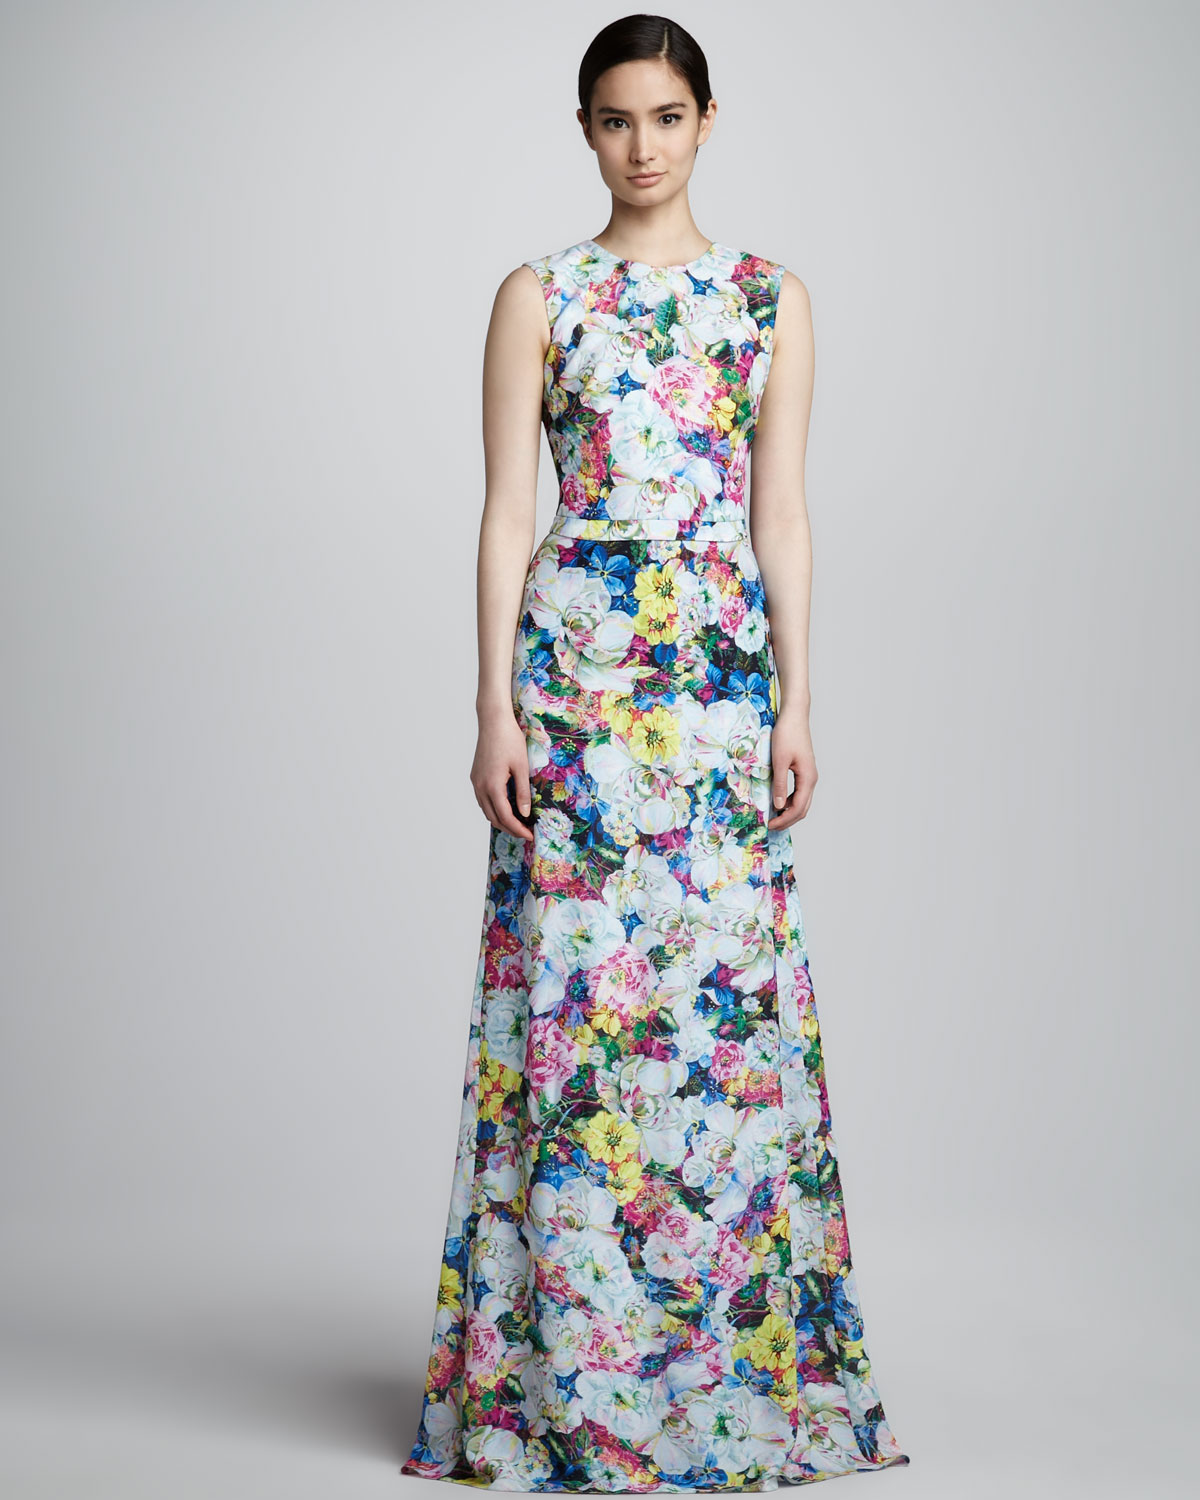 Flower Dress: Erdem Long Floralprint Dress